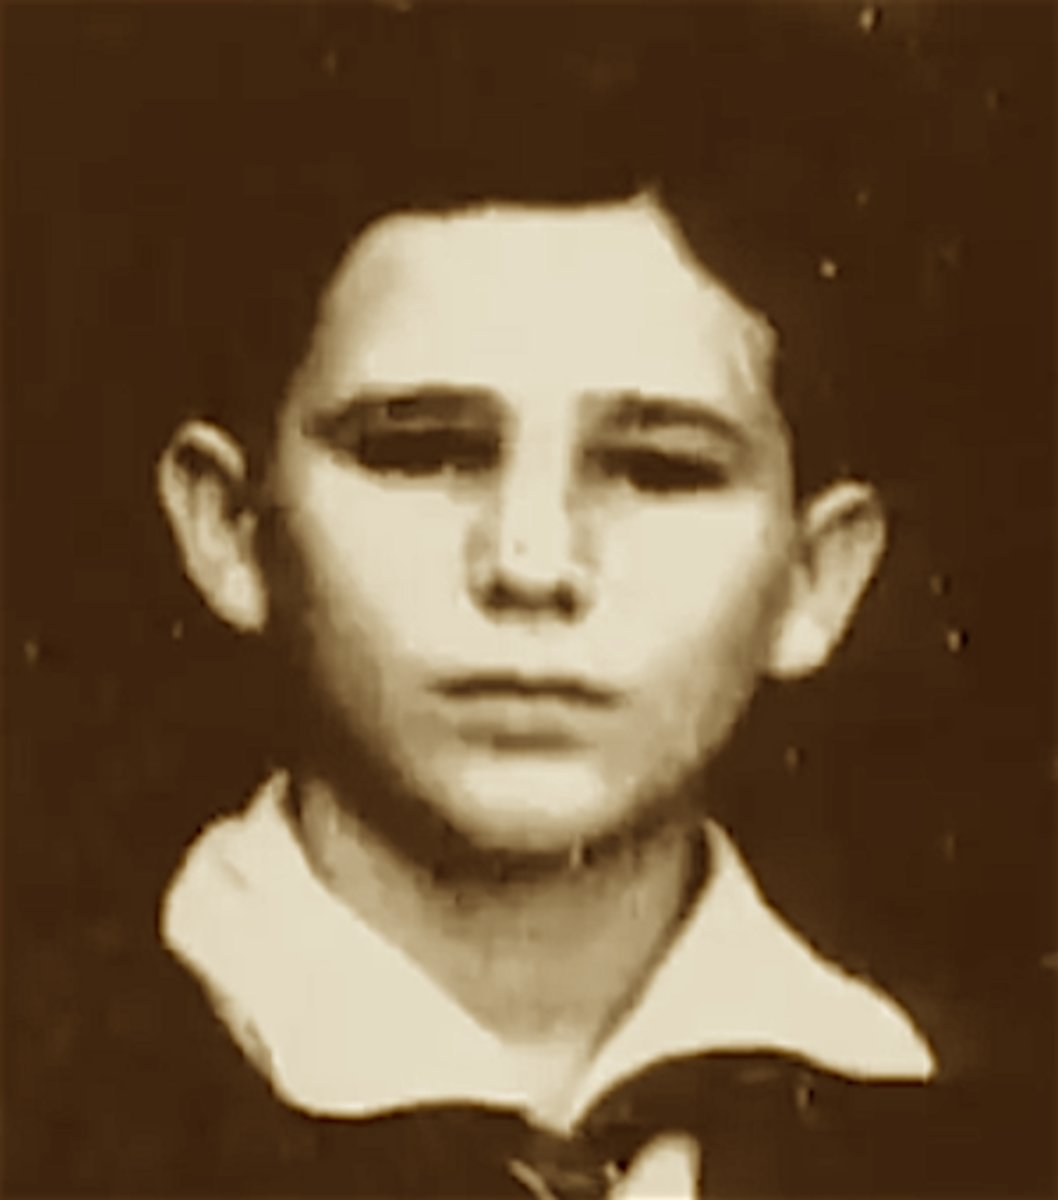 Fidel Castro as a young boy.  His death in 2016 ended one of the longest reigns of any world leader of his era.